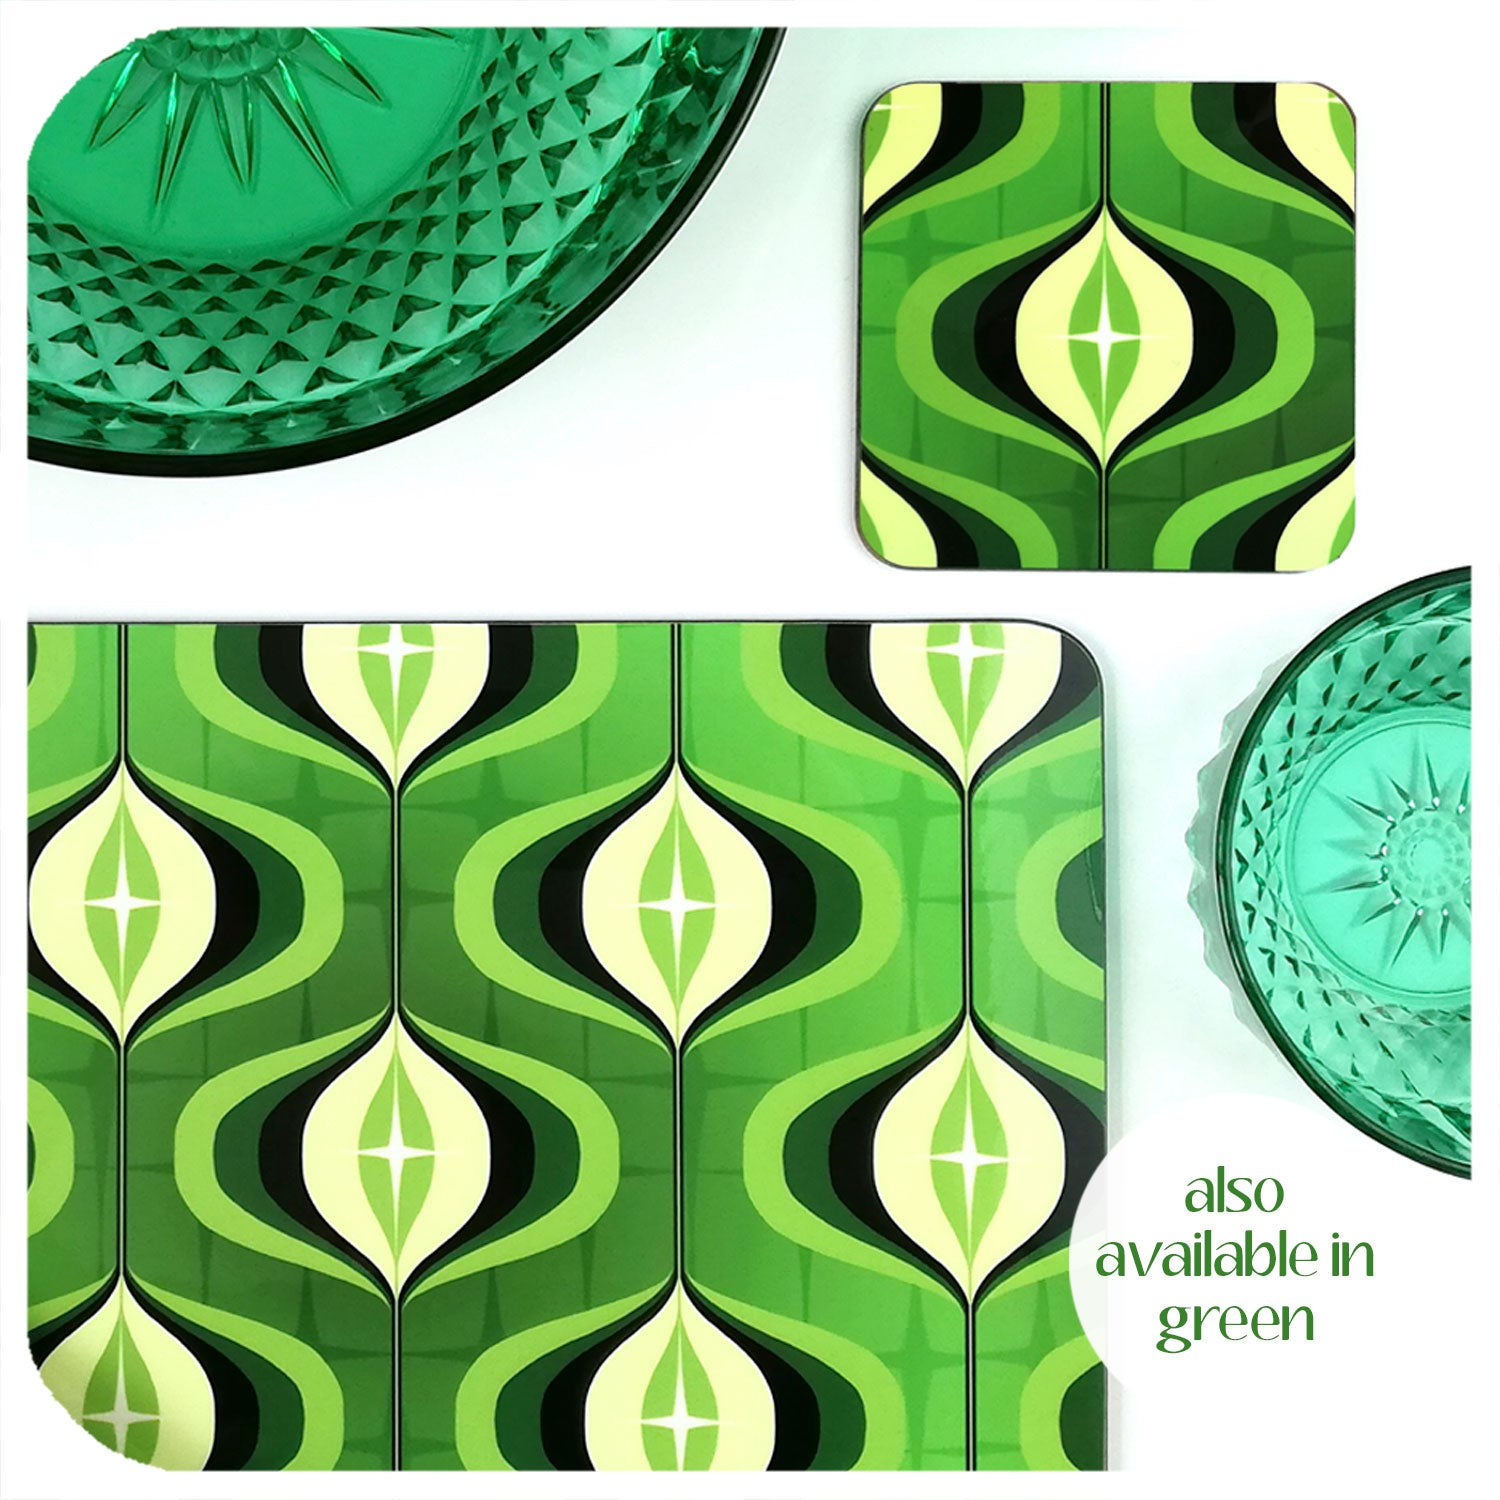 70s style Op Art Tableware in Green | The Inkabilly Emporium